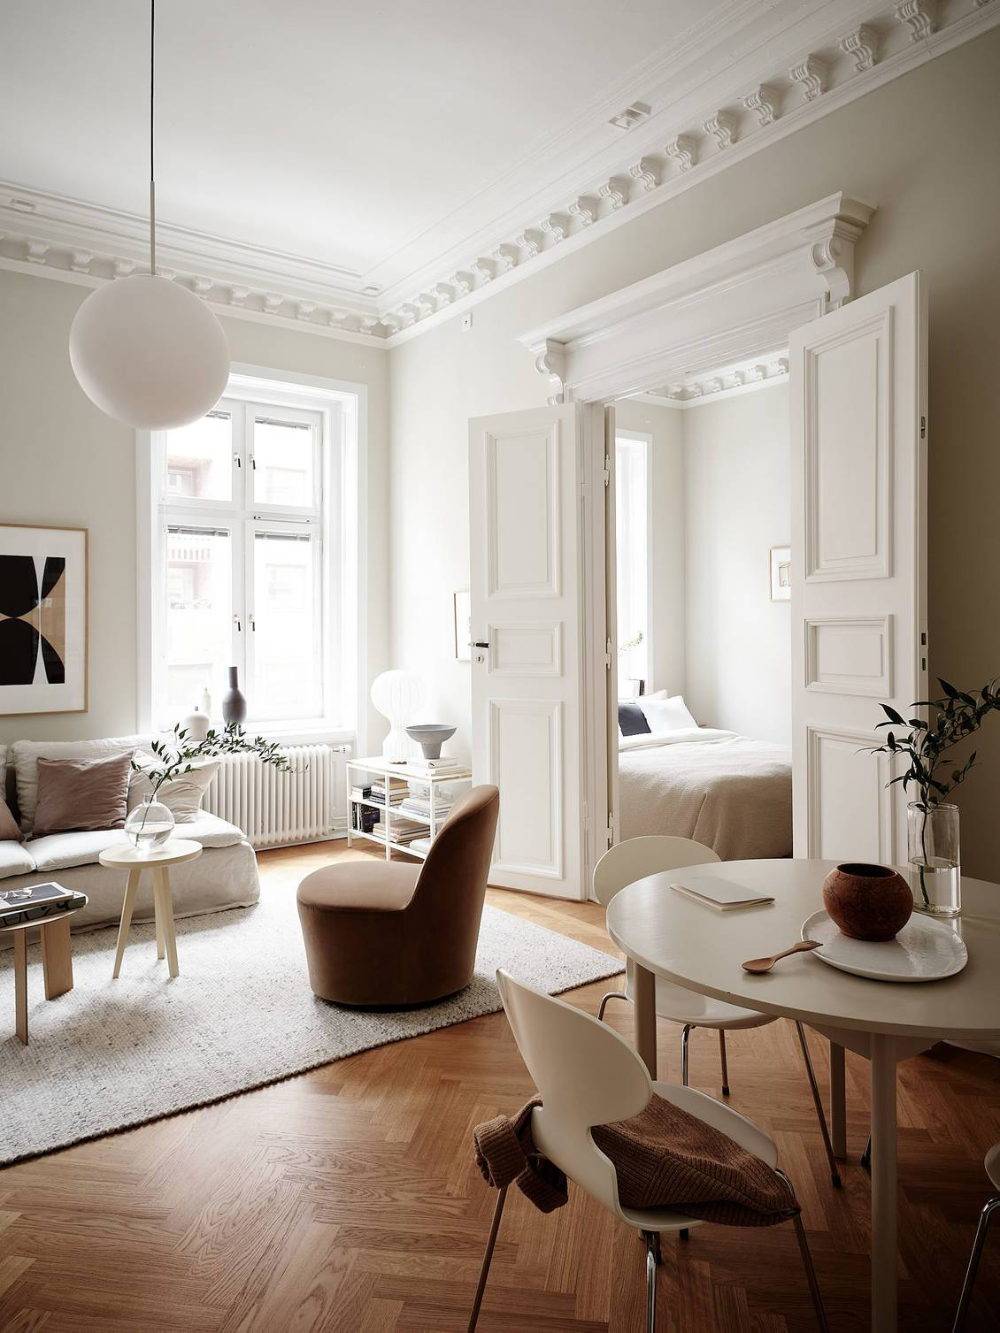 Photo of Turn of the century home in warm tints – COCO LAPINE DESIGN